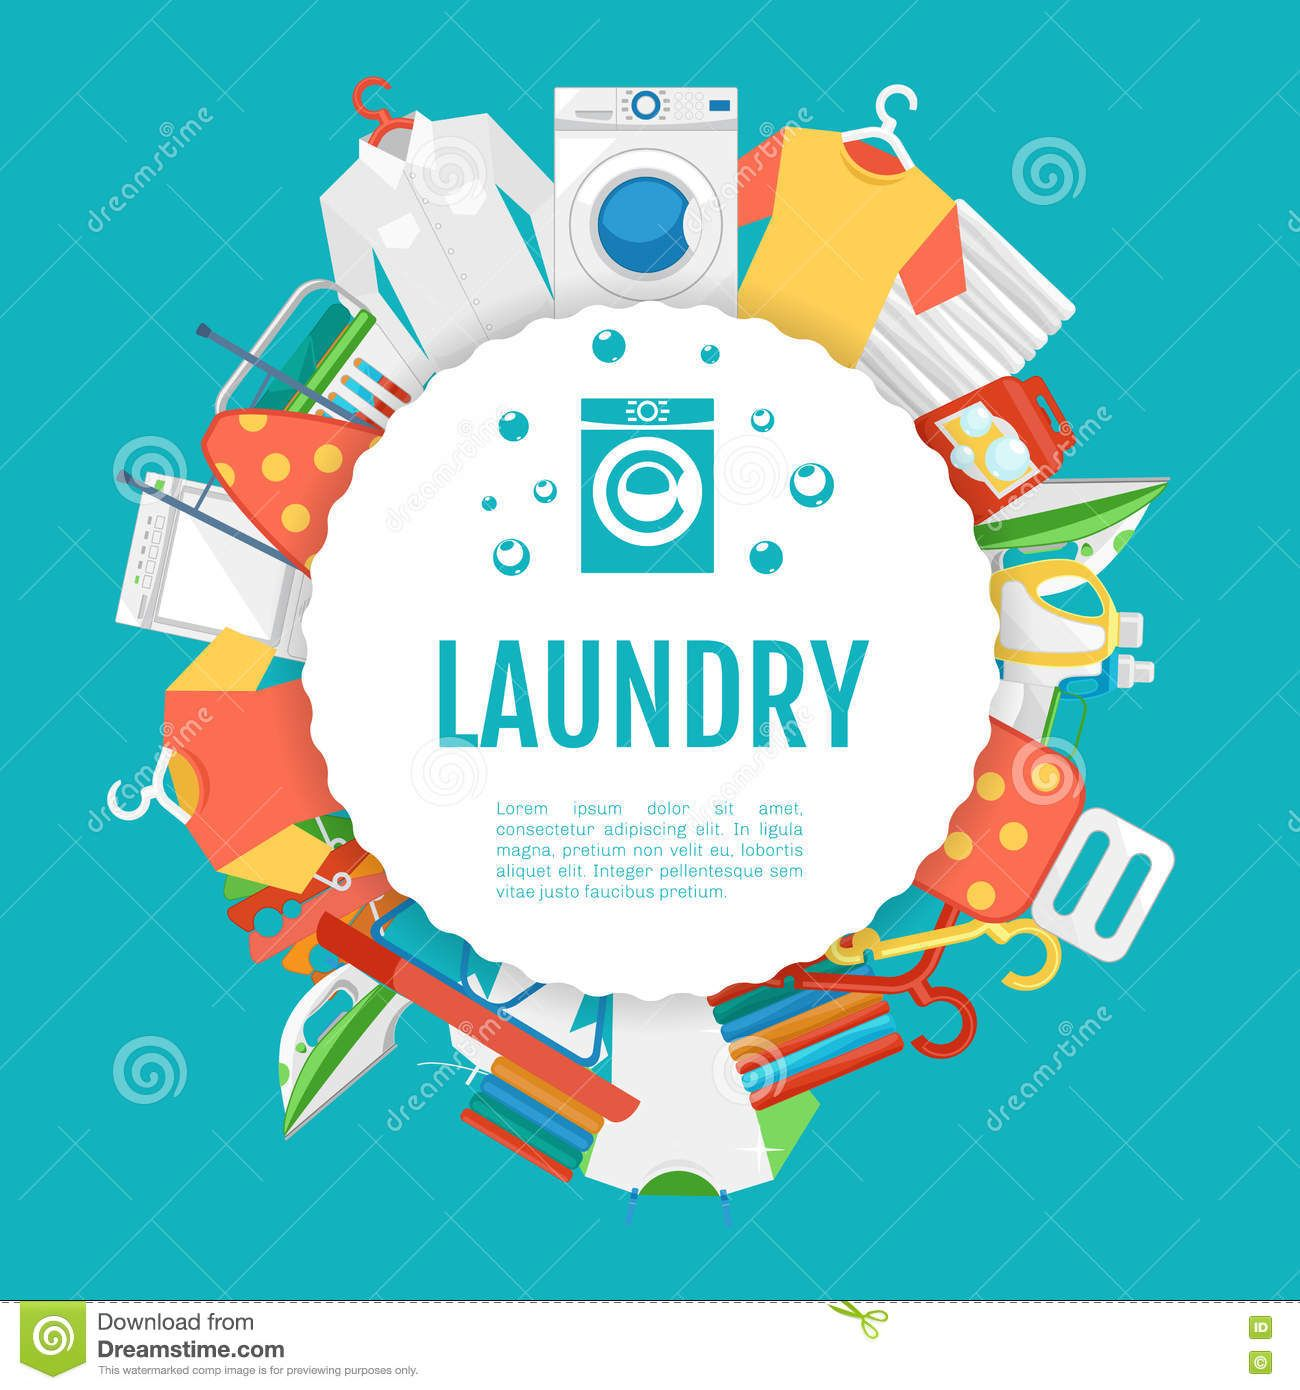 Laundry service poster design icons circle label with text download from over 53 million